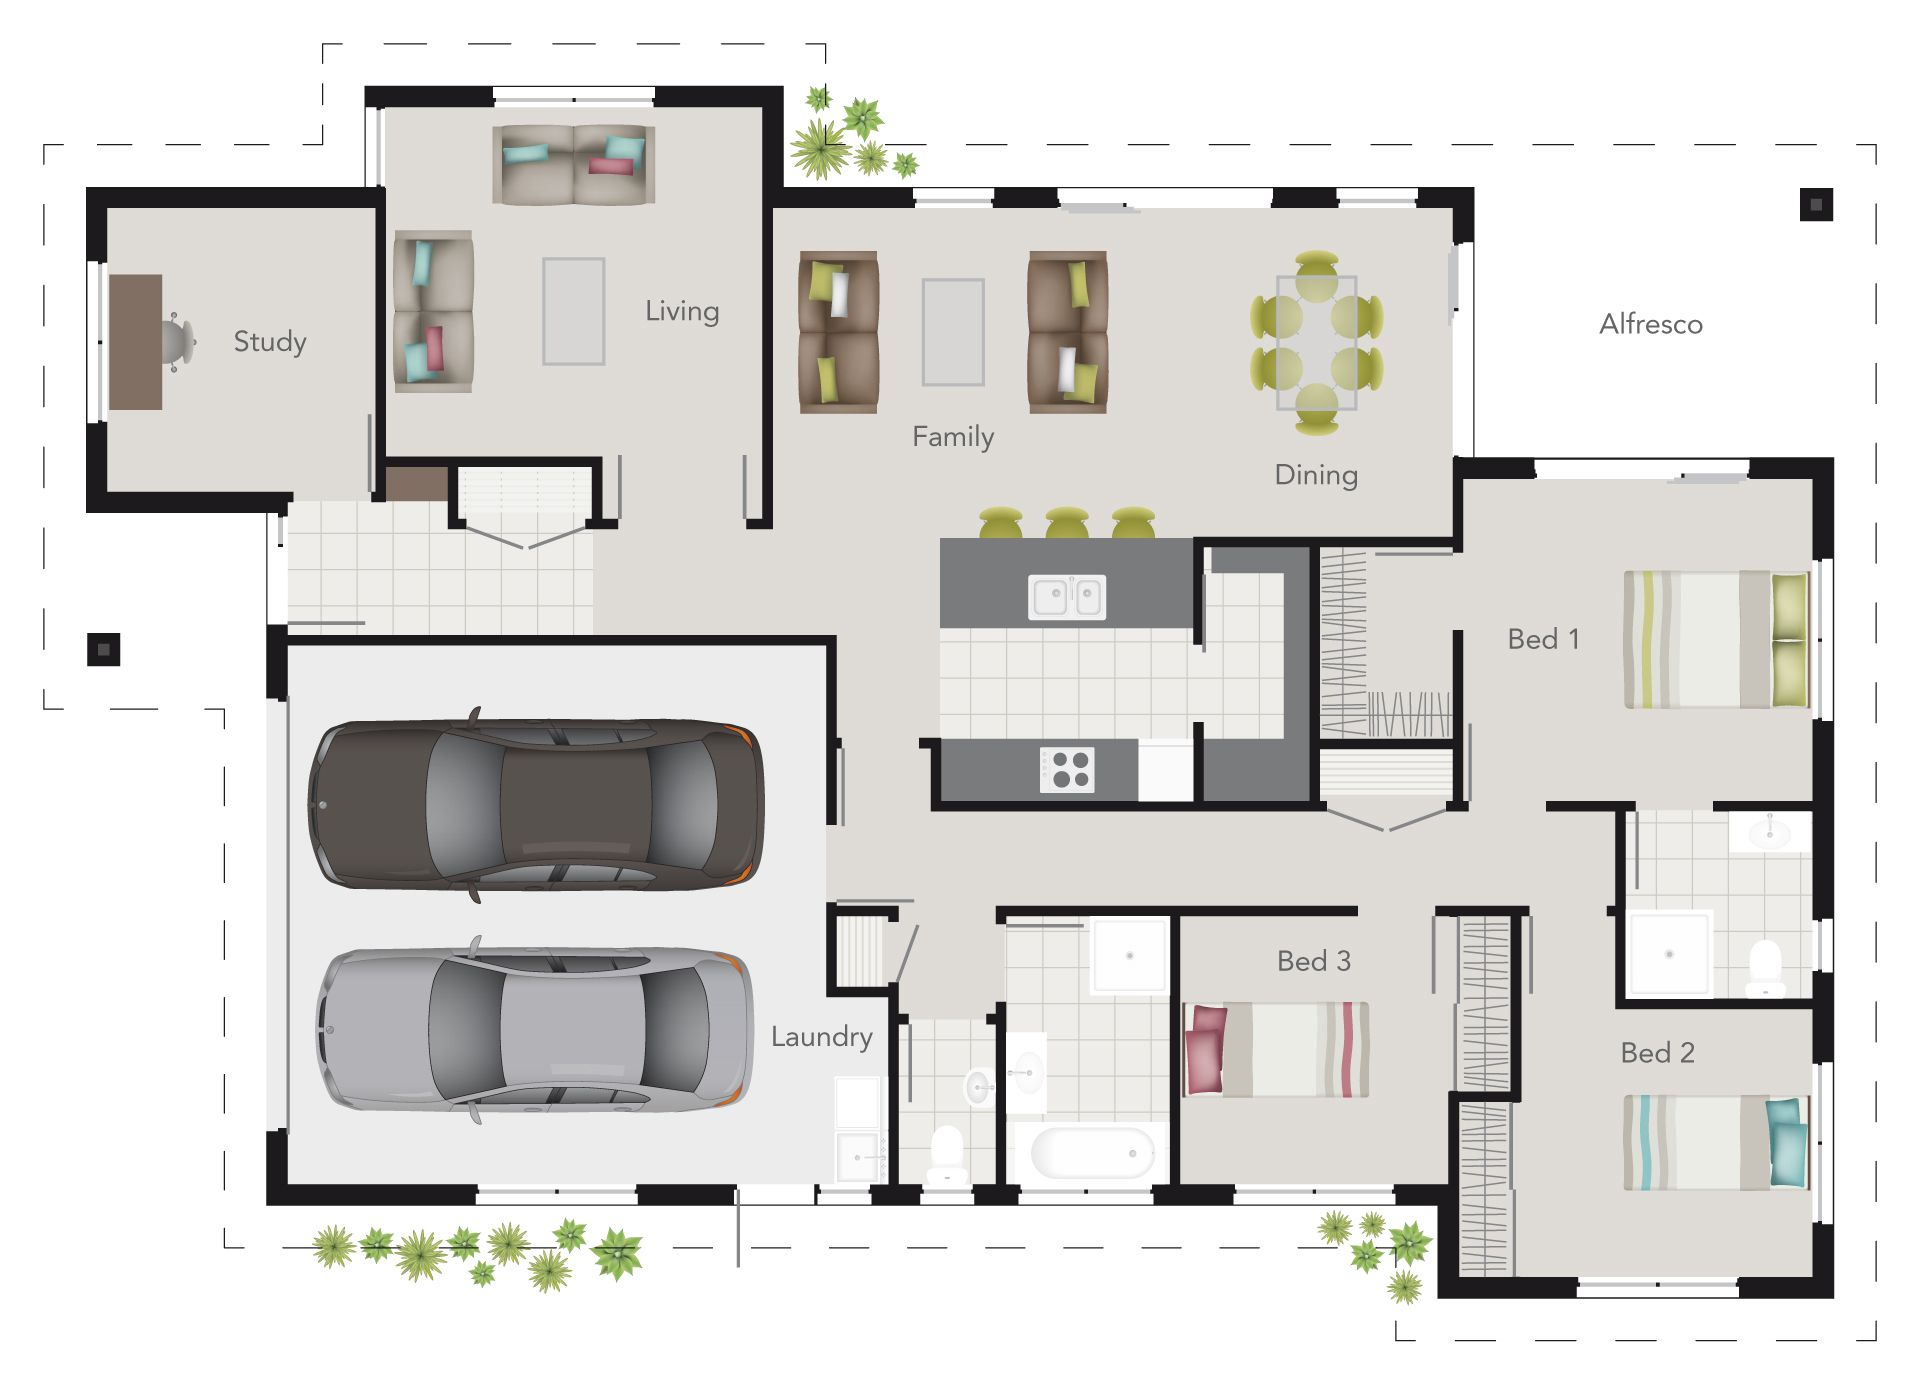 G j gardner wright plan 3 bedroom floor plan with study for Room floor design